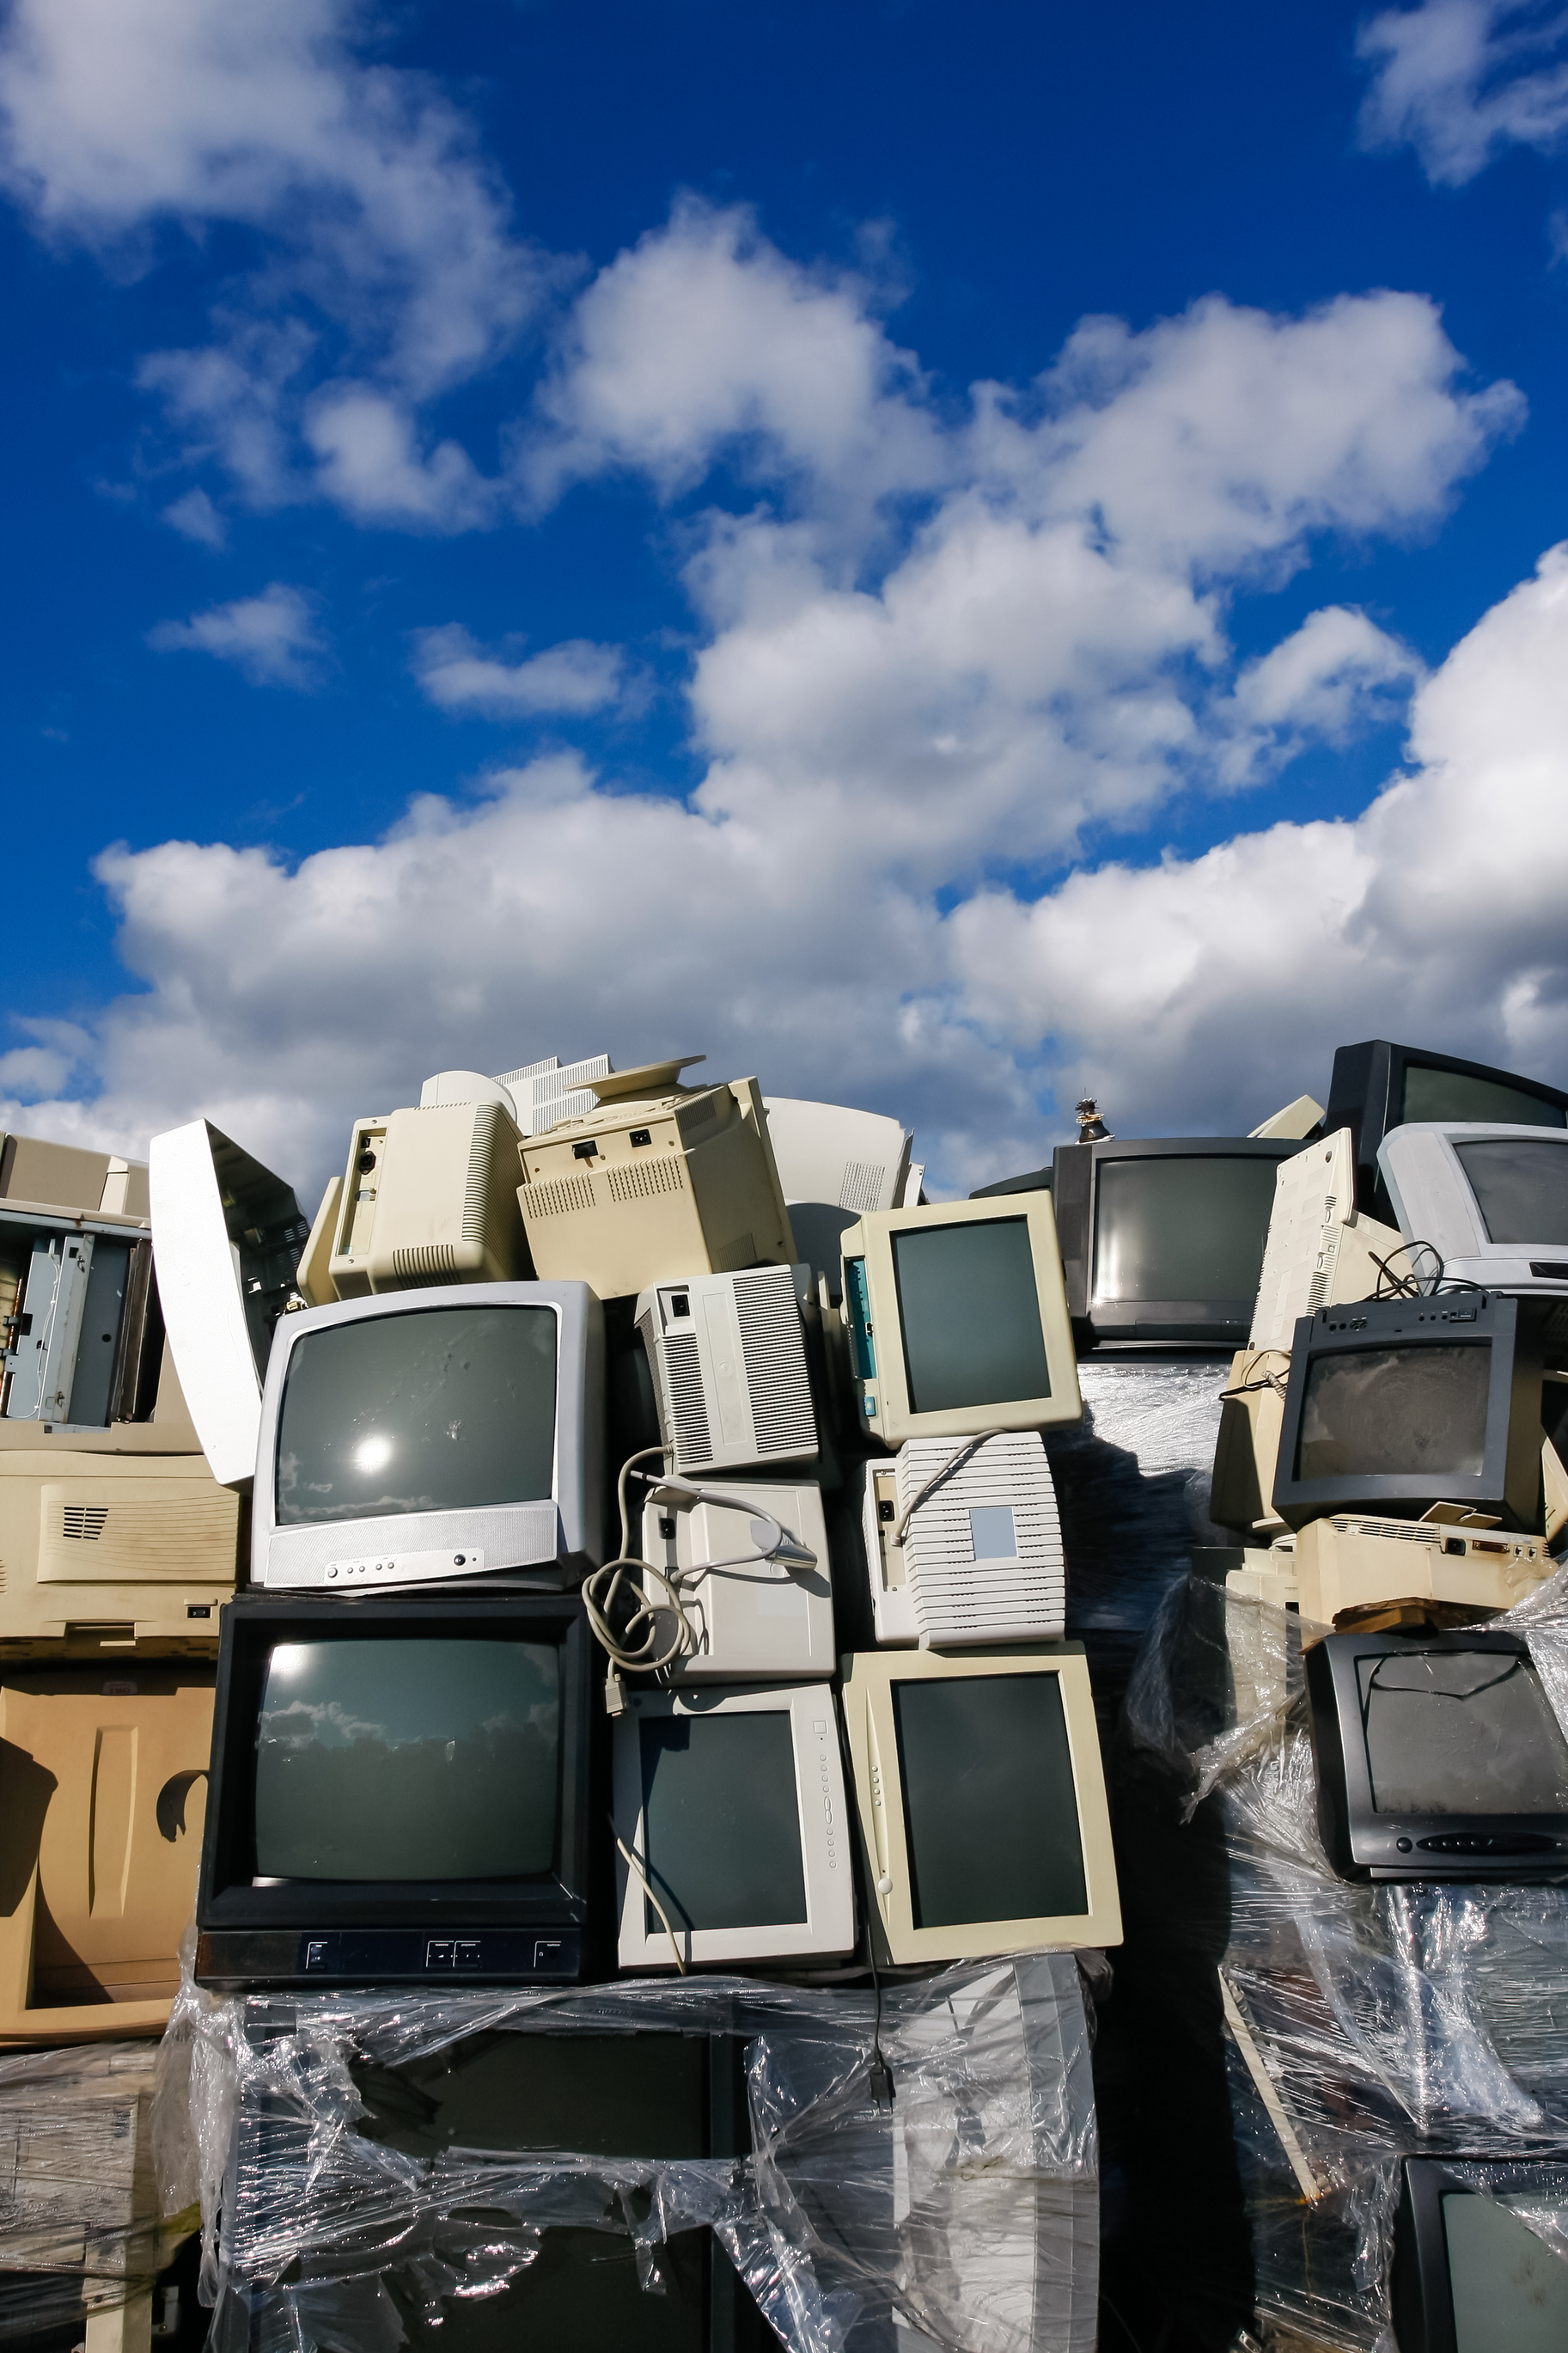 Pile of TVs and Electronics for recycling